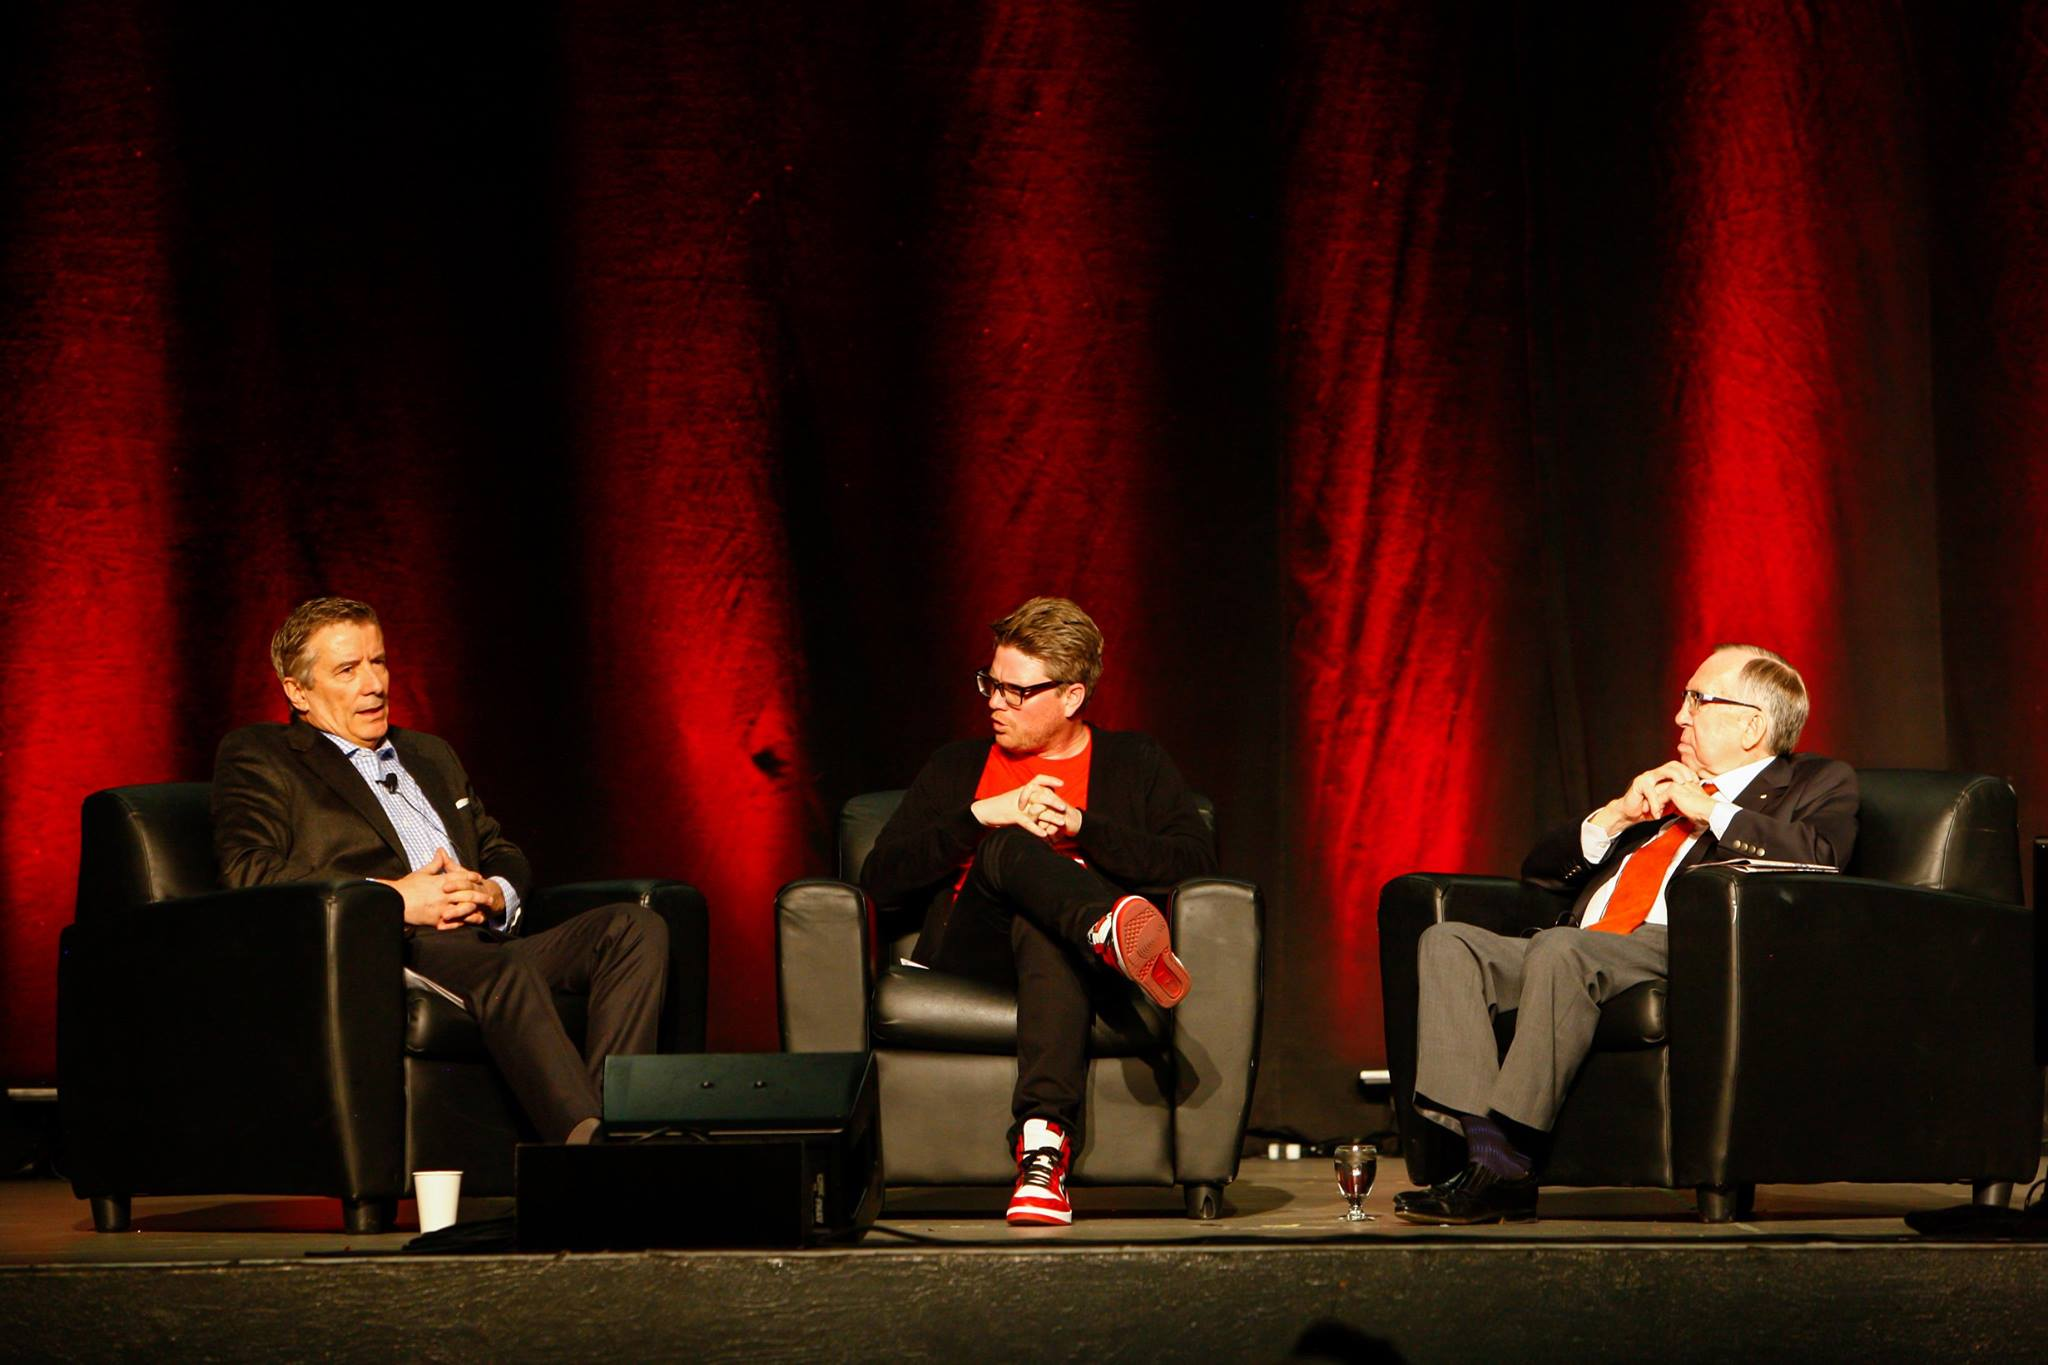 Interviewing two major Canadian philanthropists, Geoff Cumming and Dick Haskayne for UCalgary Alumni Weekend 2015 and a live episode of Peer Review.